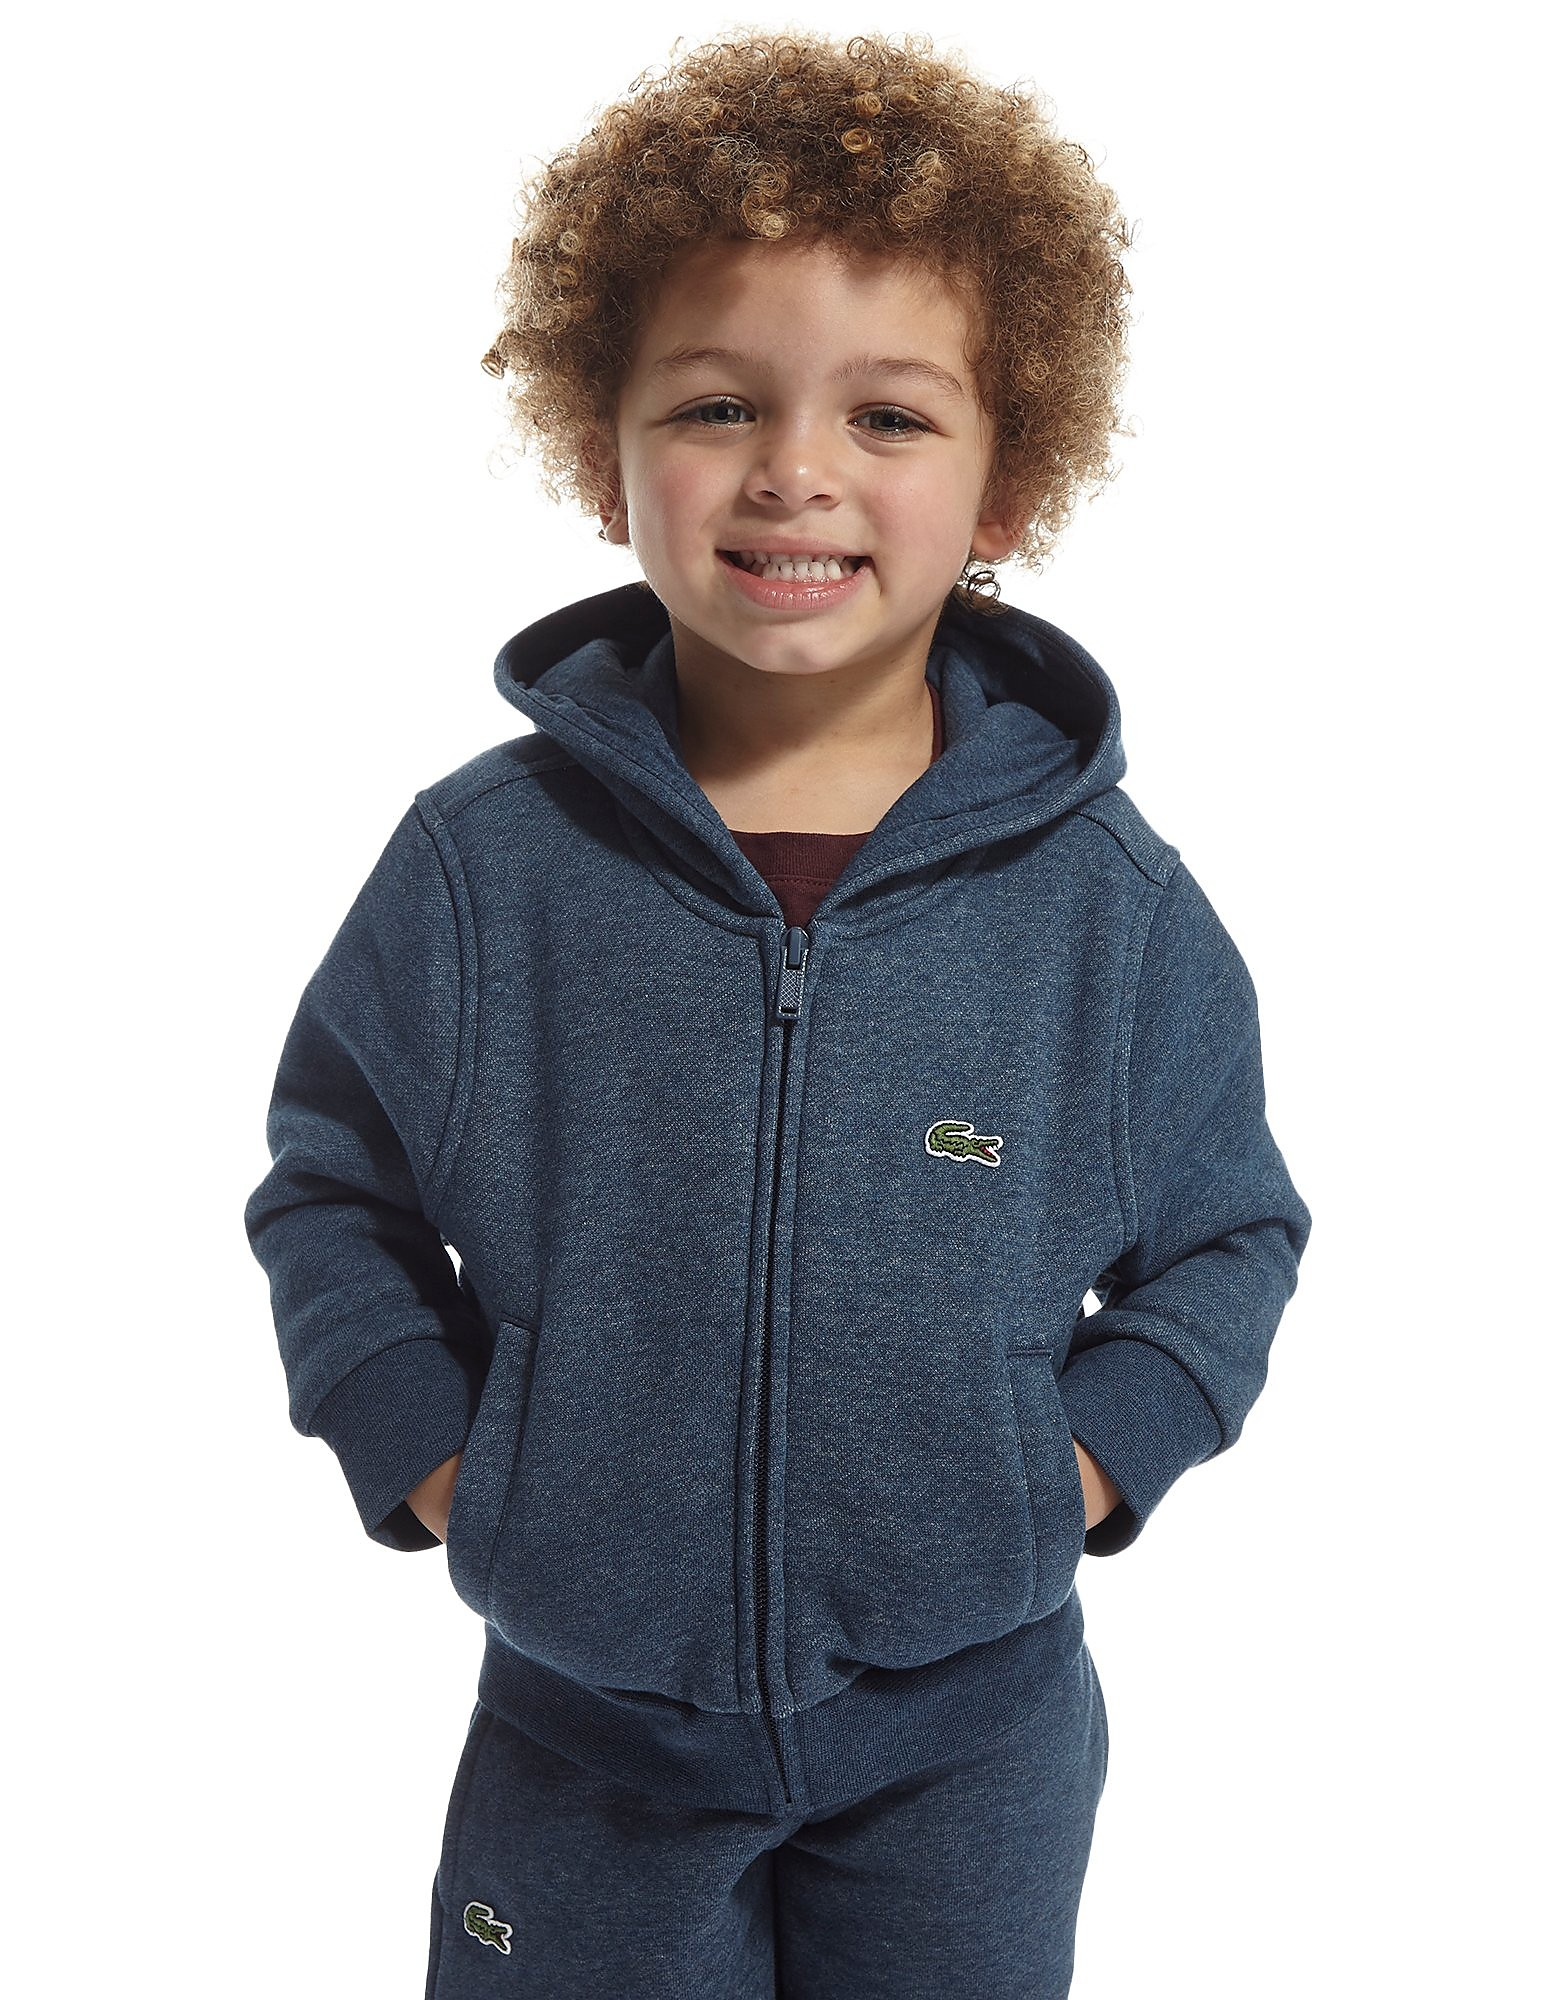 Lacoste Full Zip Hoody Children